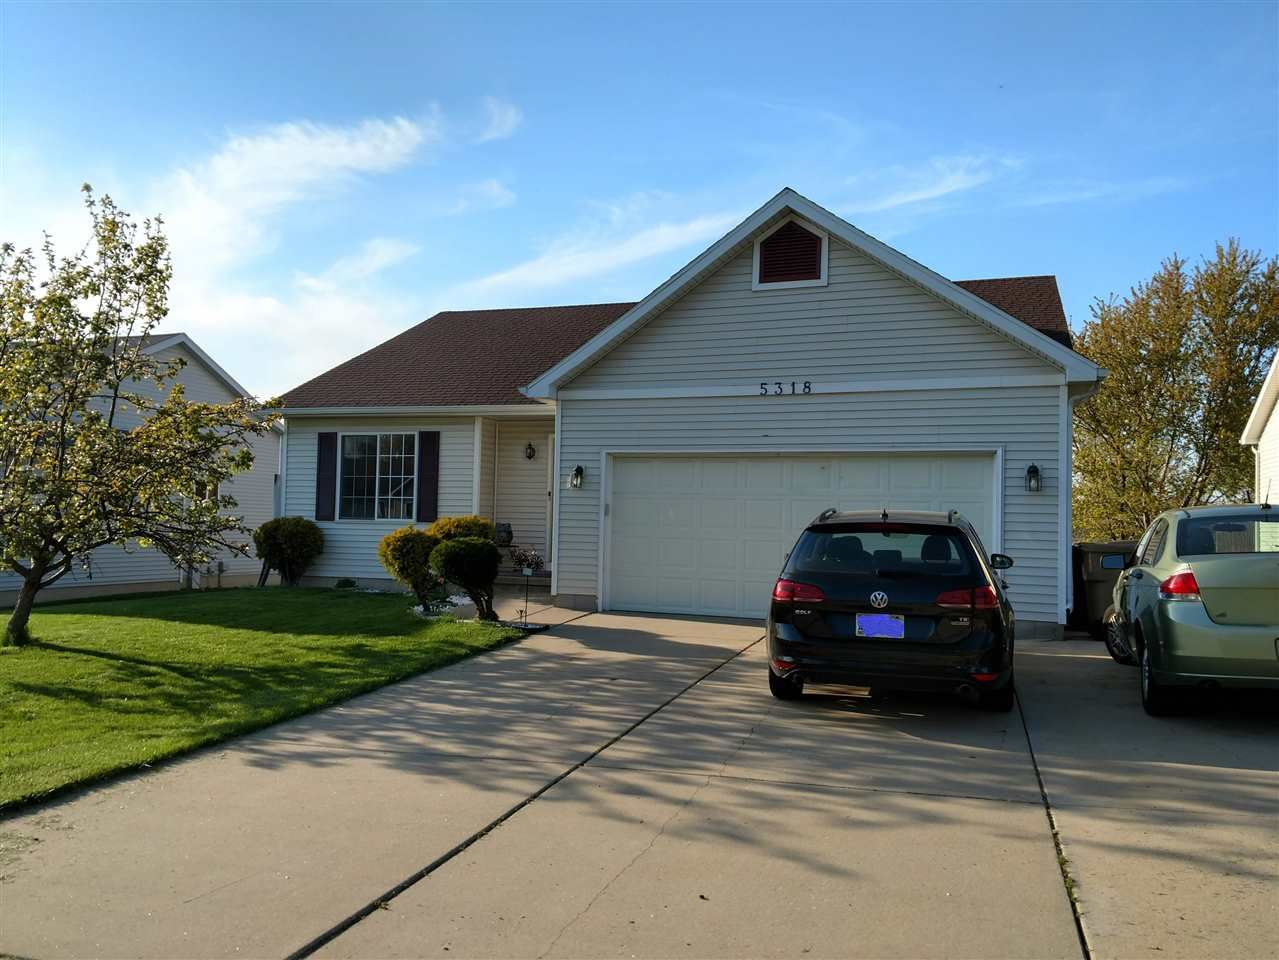 5318 Valley Edge Dr, Madison, WI 53704-8925 - #: 1884002